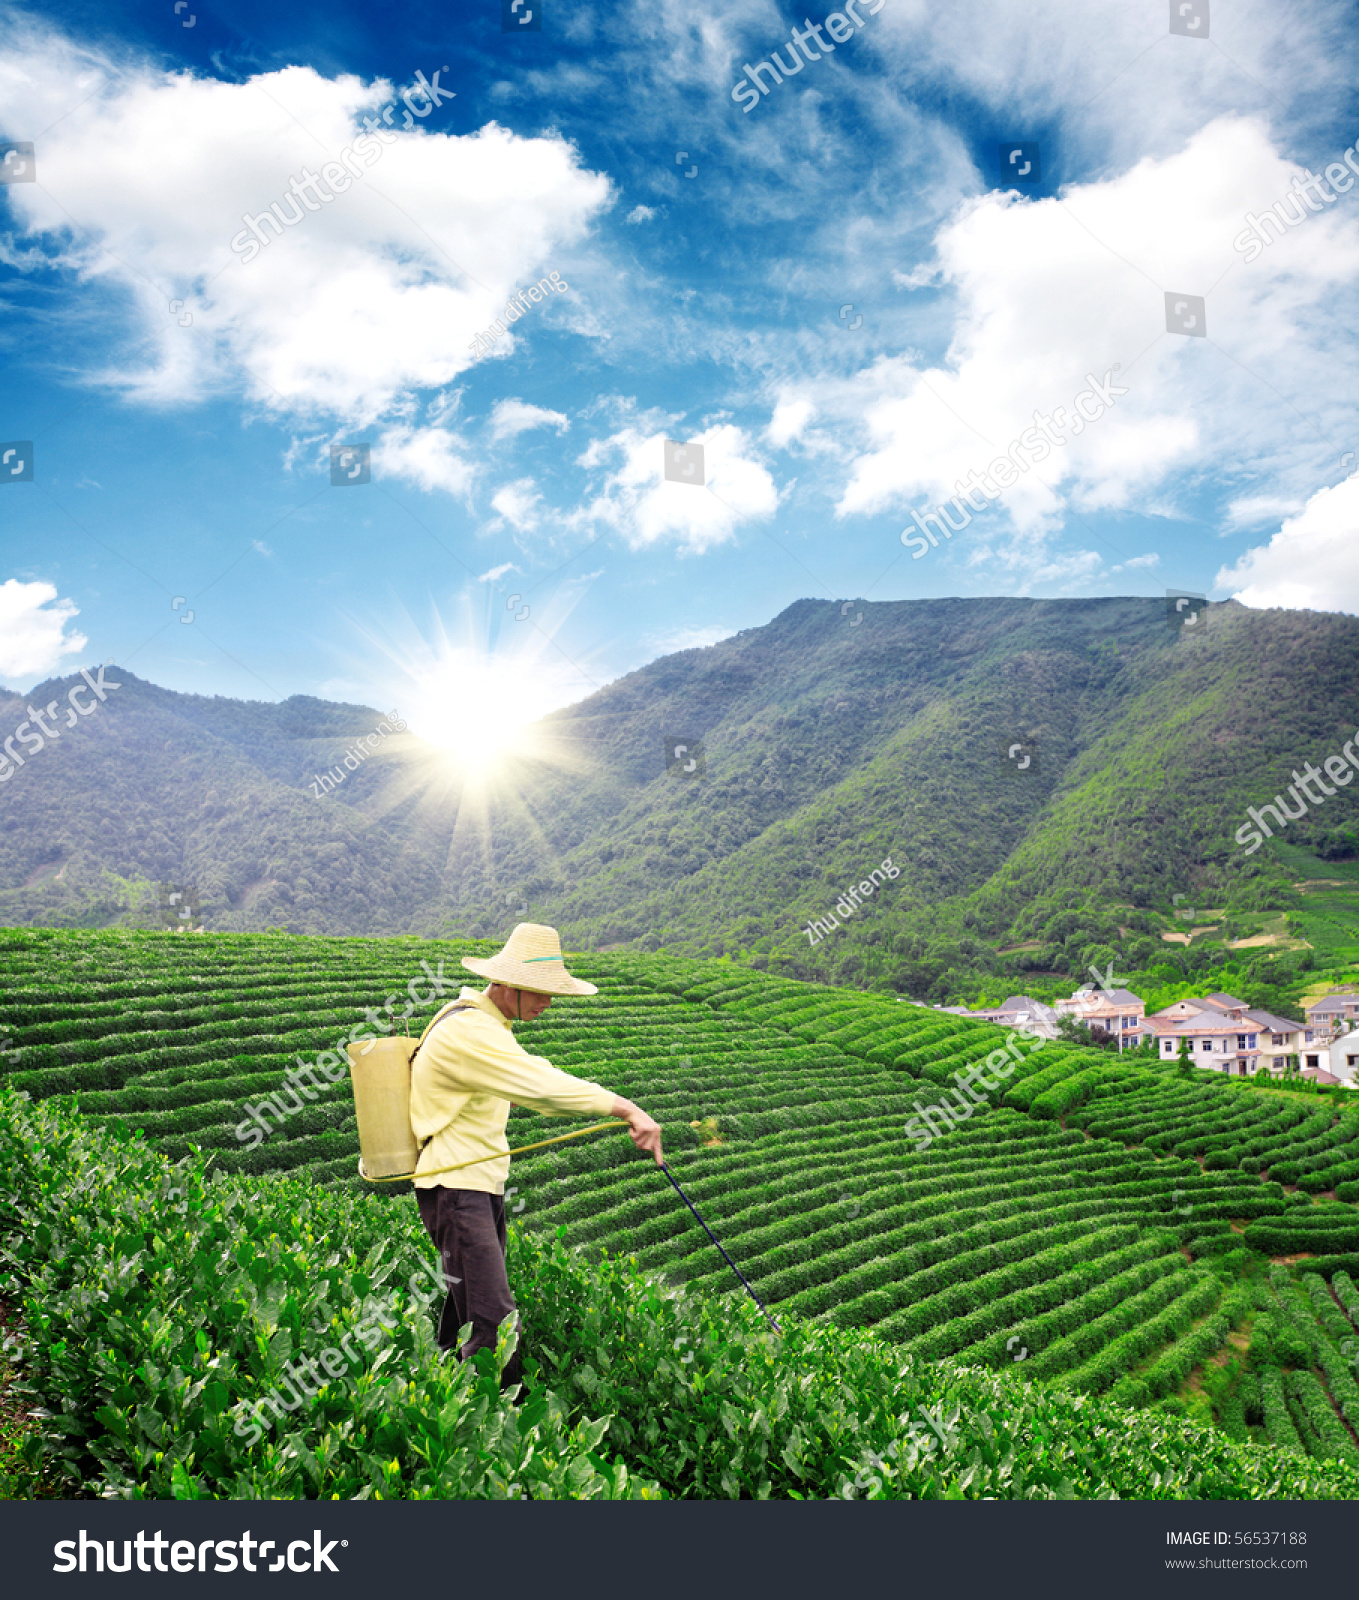 Farmer Spraying Pesticides Tea Garden Stock Photo 56537188